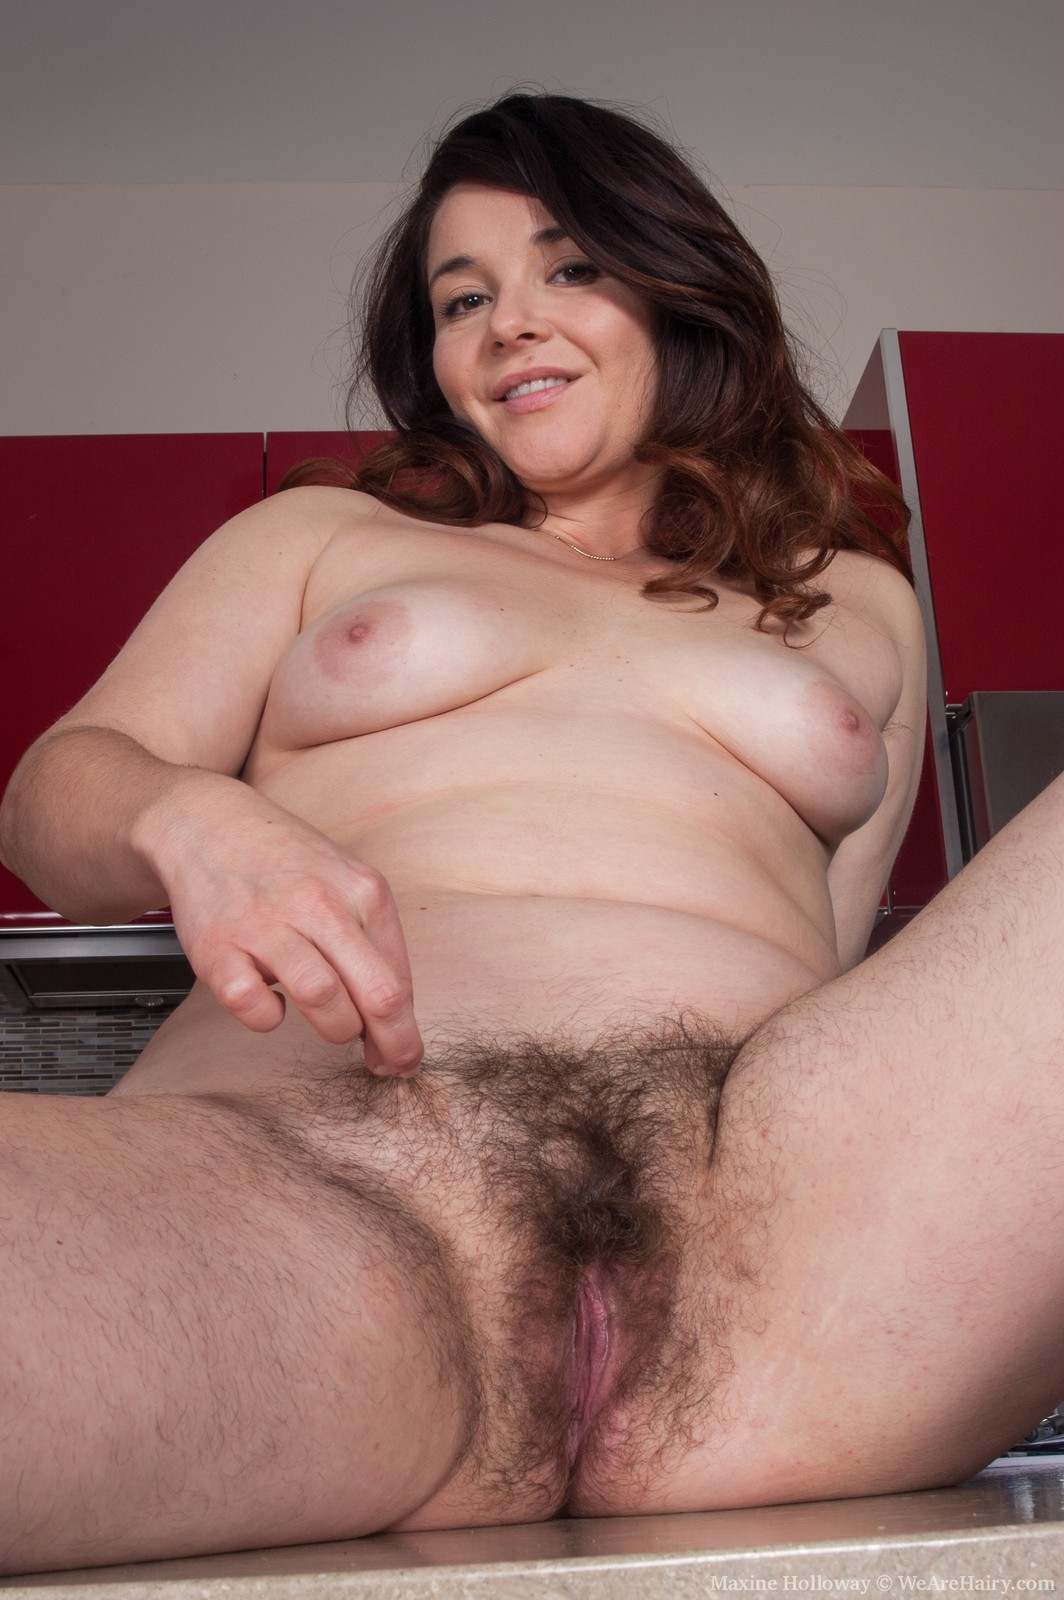 Delightful Nude fat girls with hairy pussy thanks